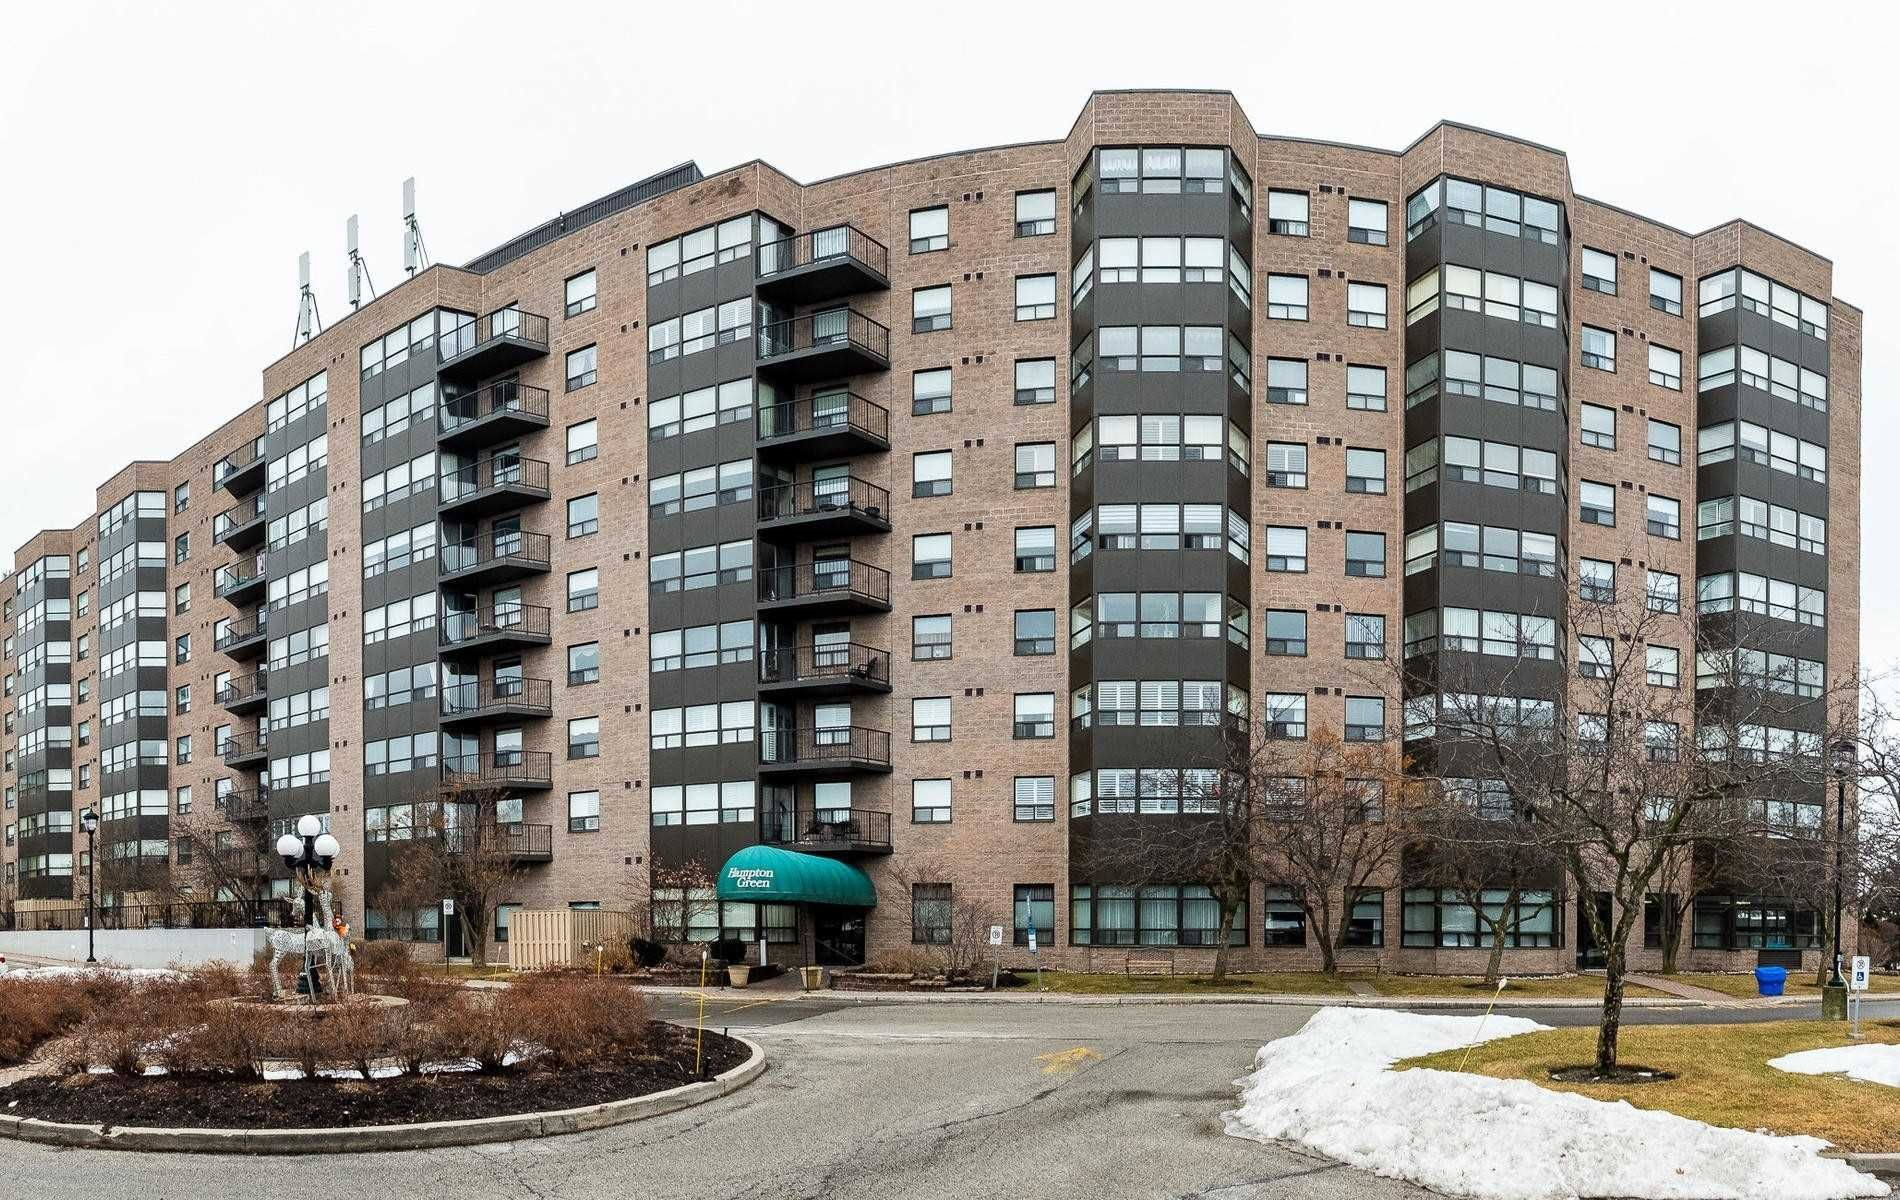 Main Photo: 212 2 Raymerville Drive in Markham: Raymerville Condo for sale : MLS®# N4702583